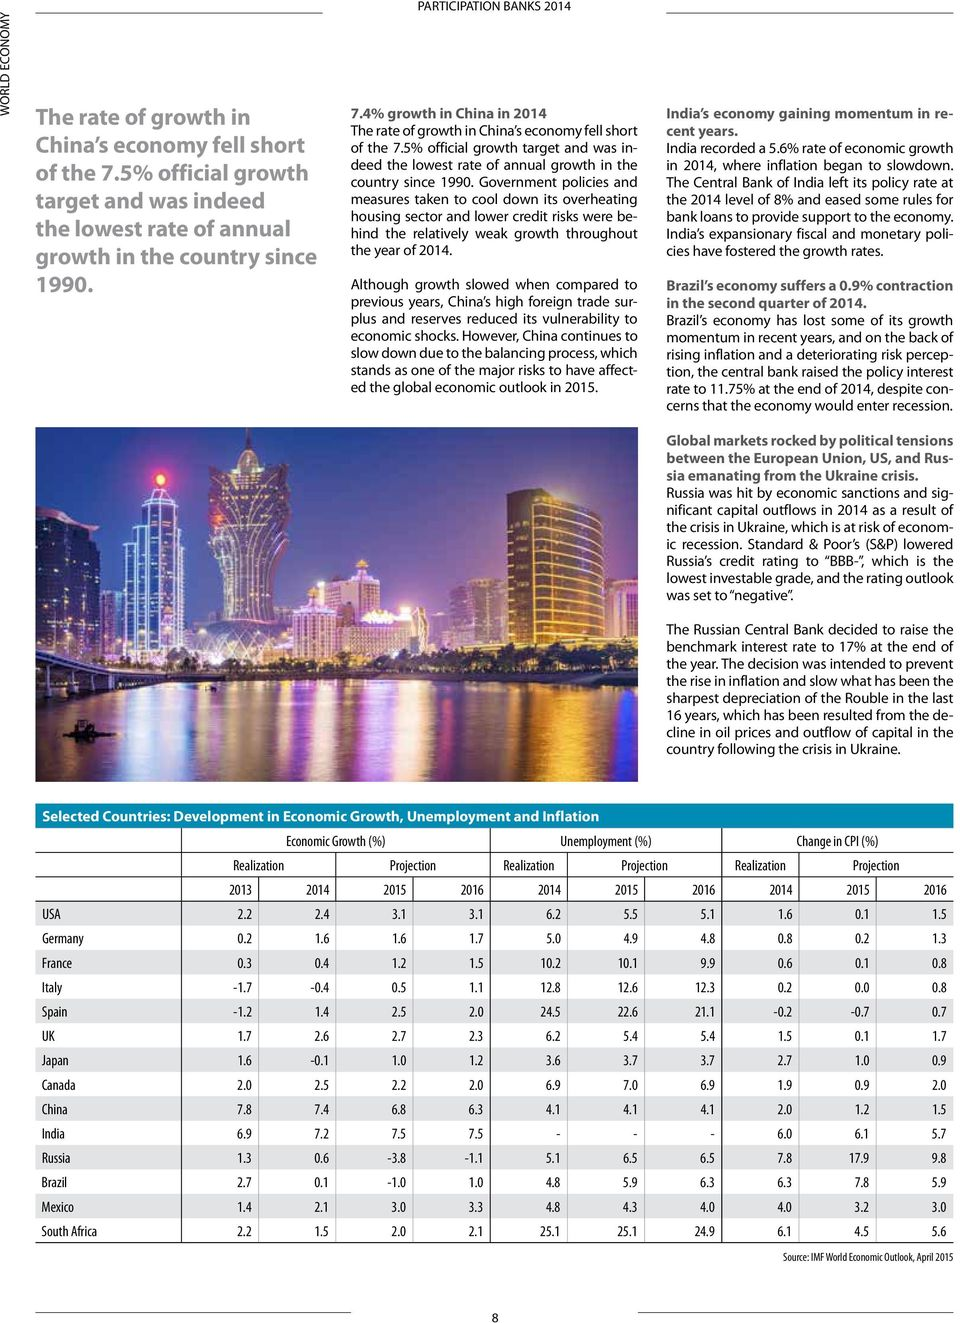 Government policies and measures taken to cool down its overheating housing sector and lower credit risks were behind the relatively weak growth throughout the year of 2014.